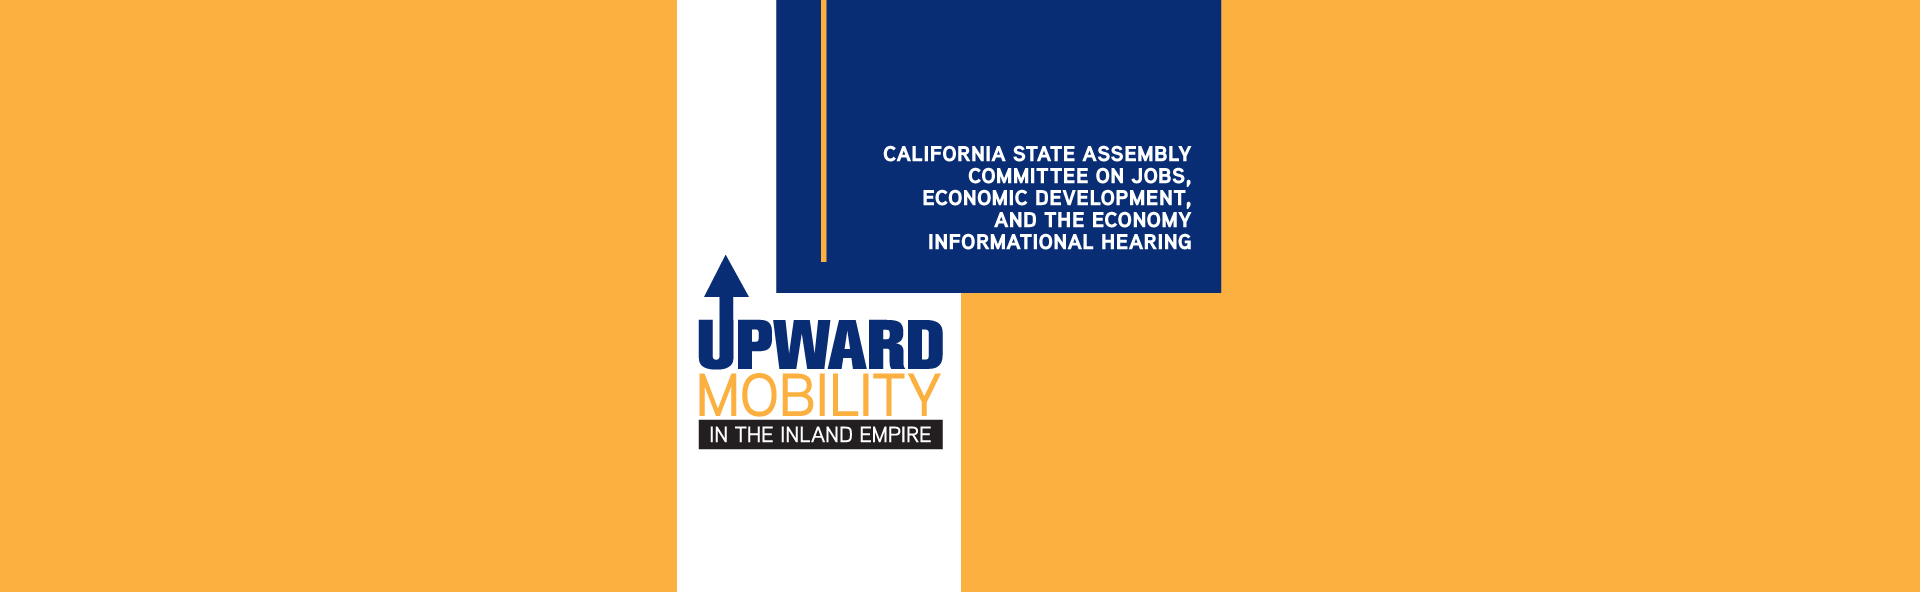 Committee Hearing on Upward Mobility in the Inland Empire